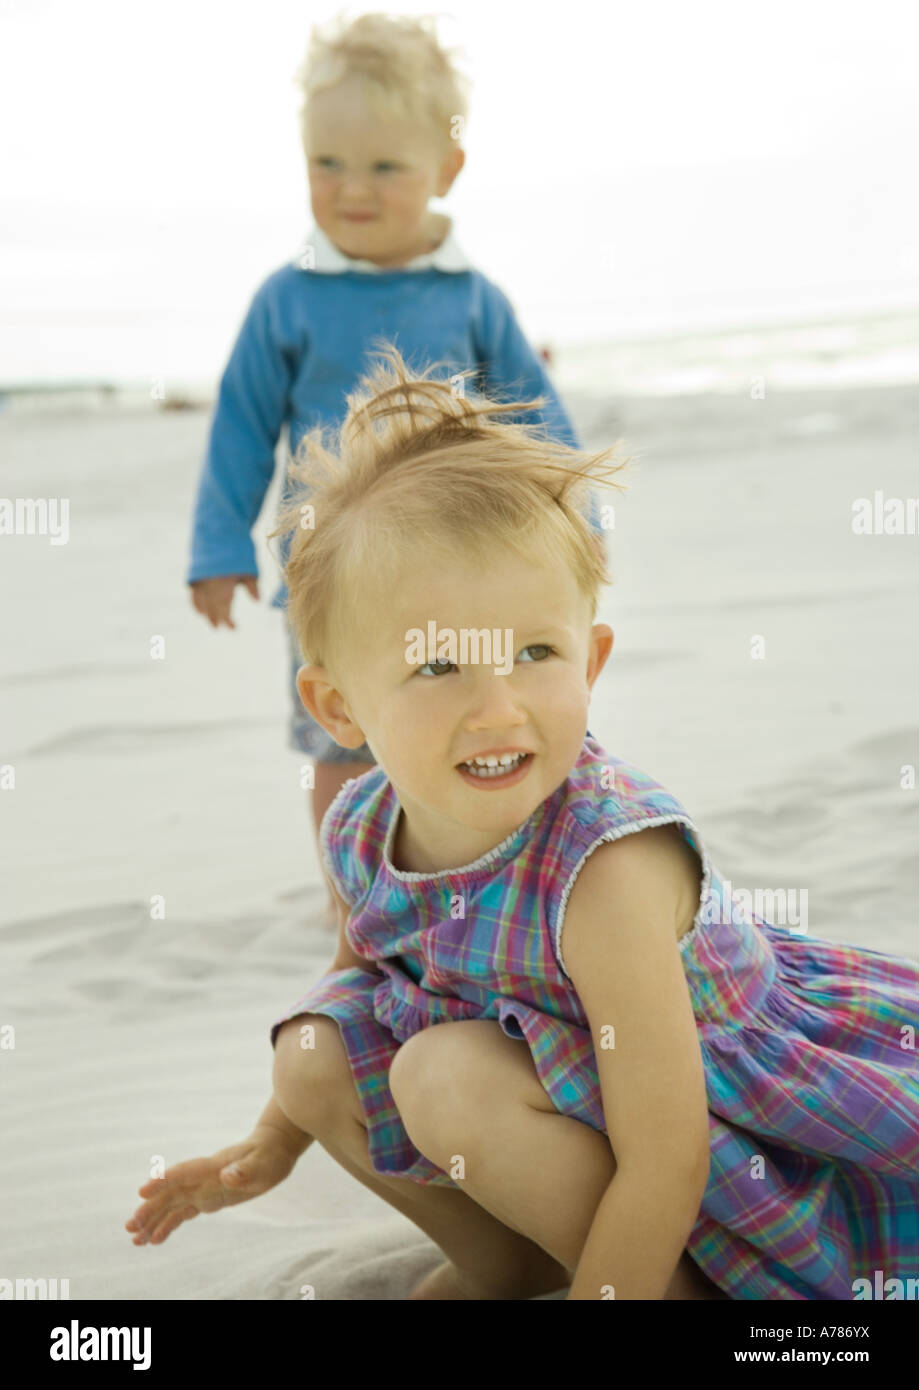 Two toddlers on beach - Stock Image